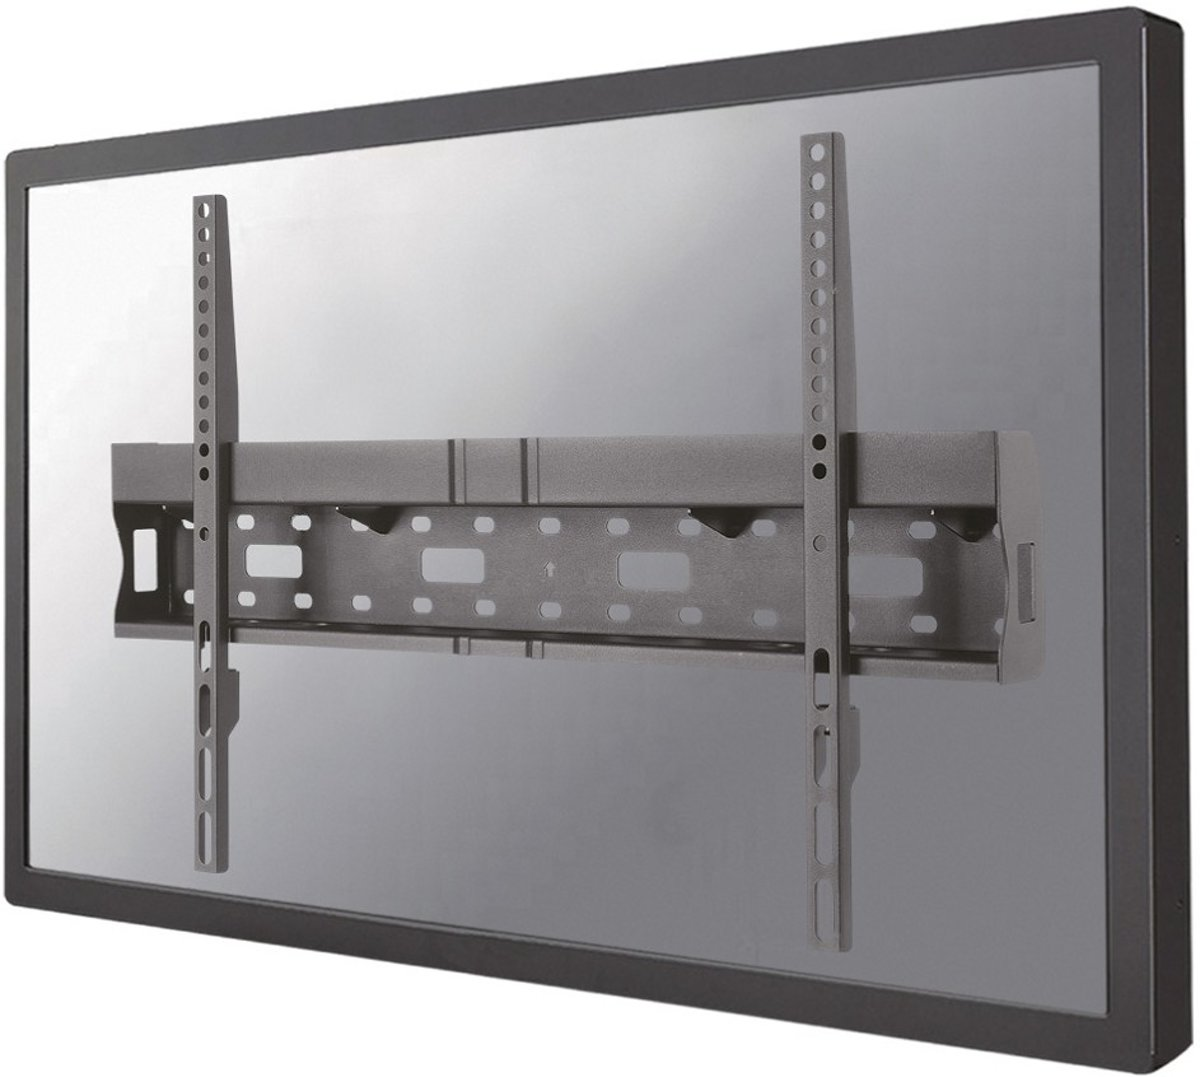 Flat Screen Wall Mount (fixed) Incl. storage for Mediaplayer/Mini PC